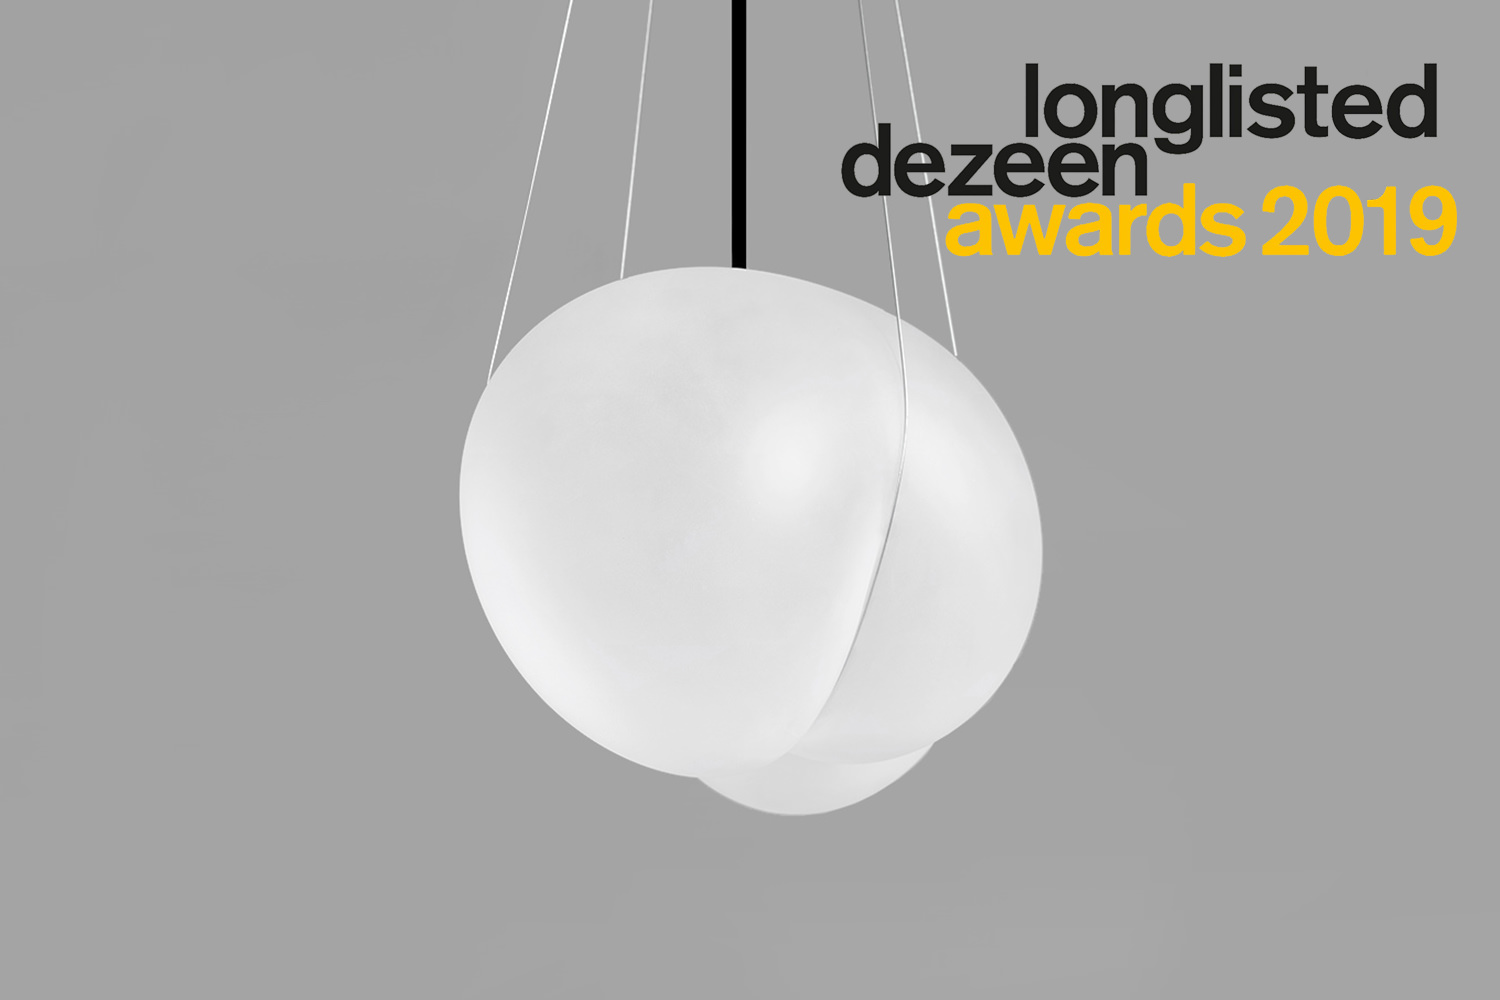 lightbody04-dezeen-awards-2019-joeg-hugo.jpg